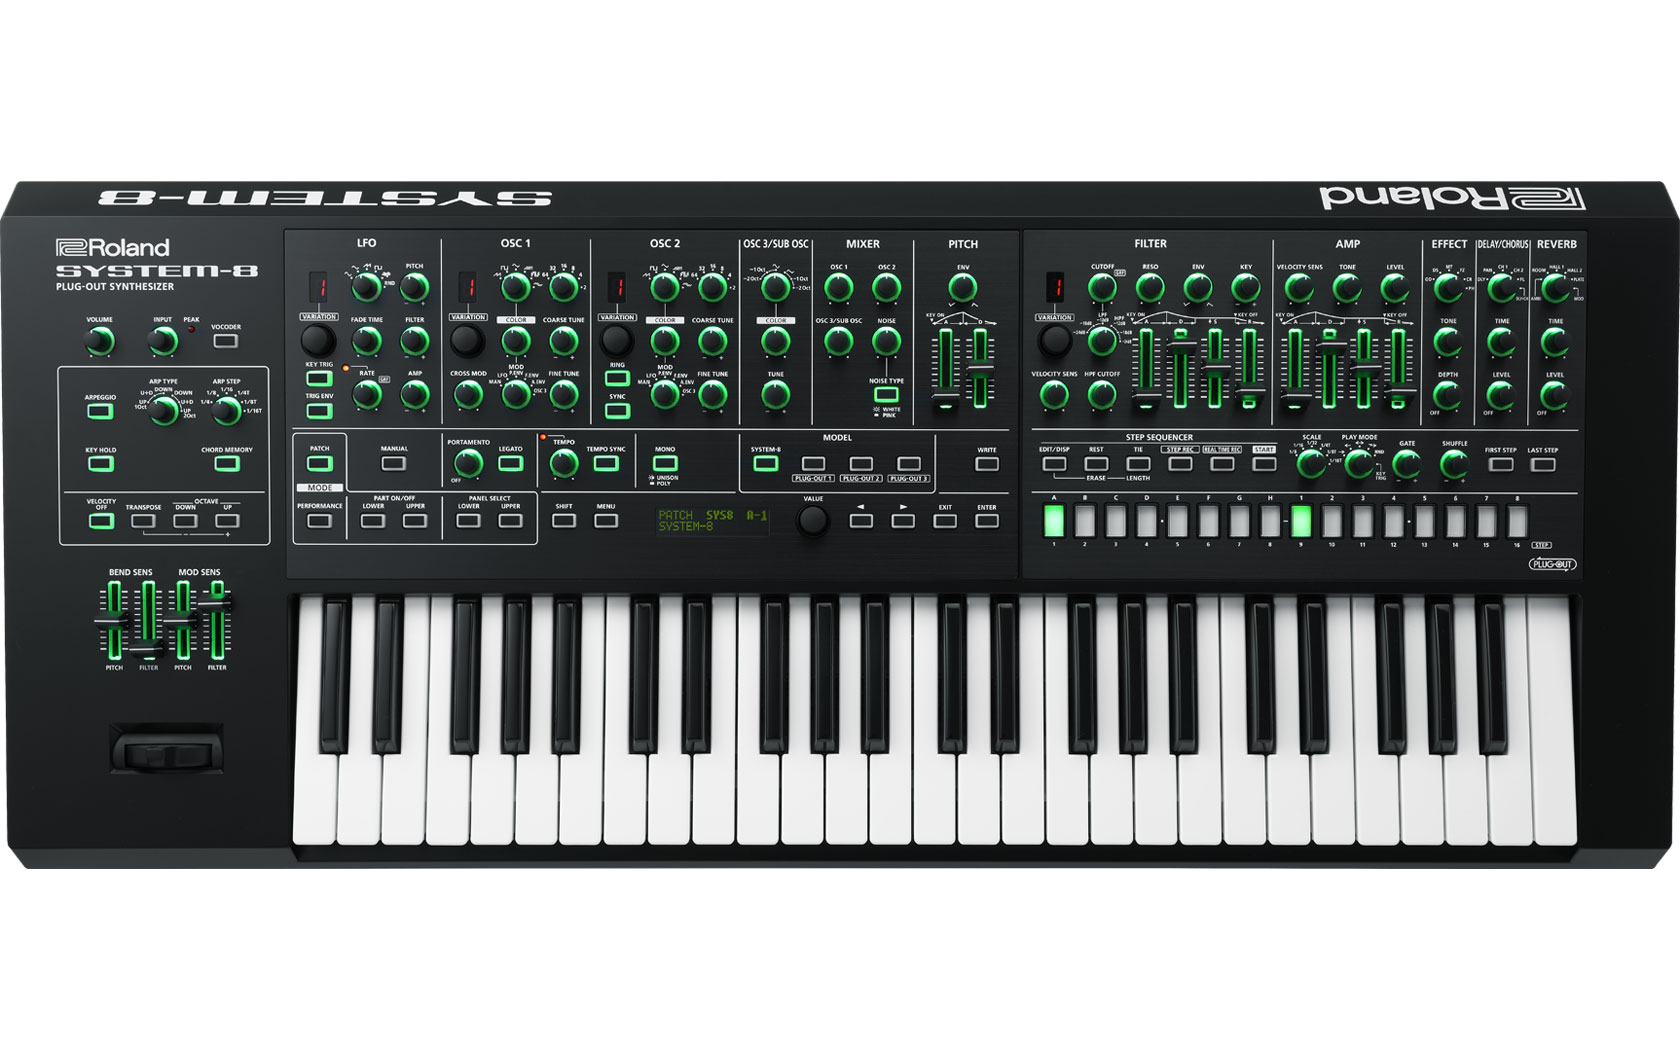 roland s big sound in a 4 in 1 synth reviews roland system 8